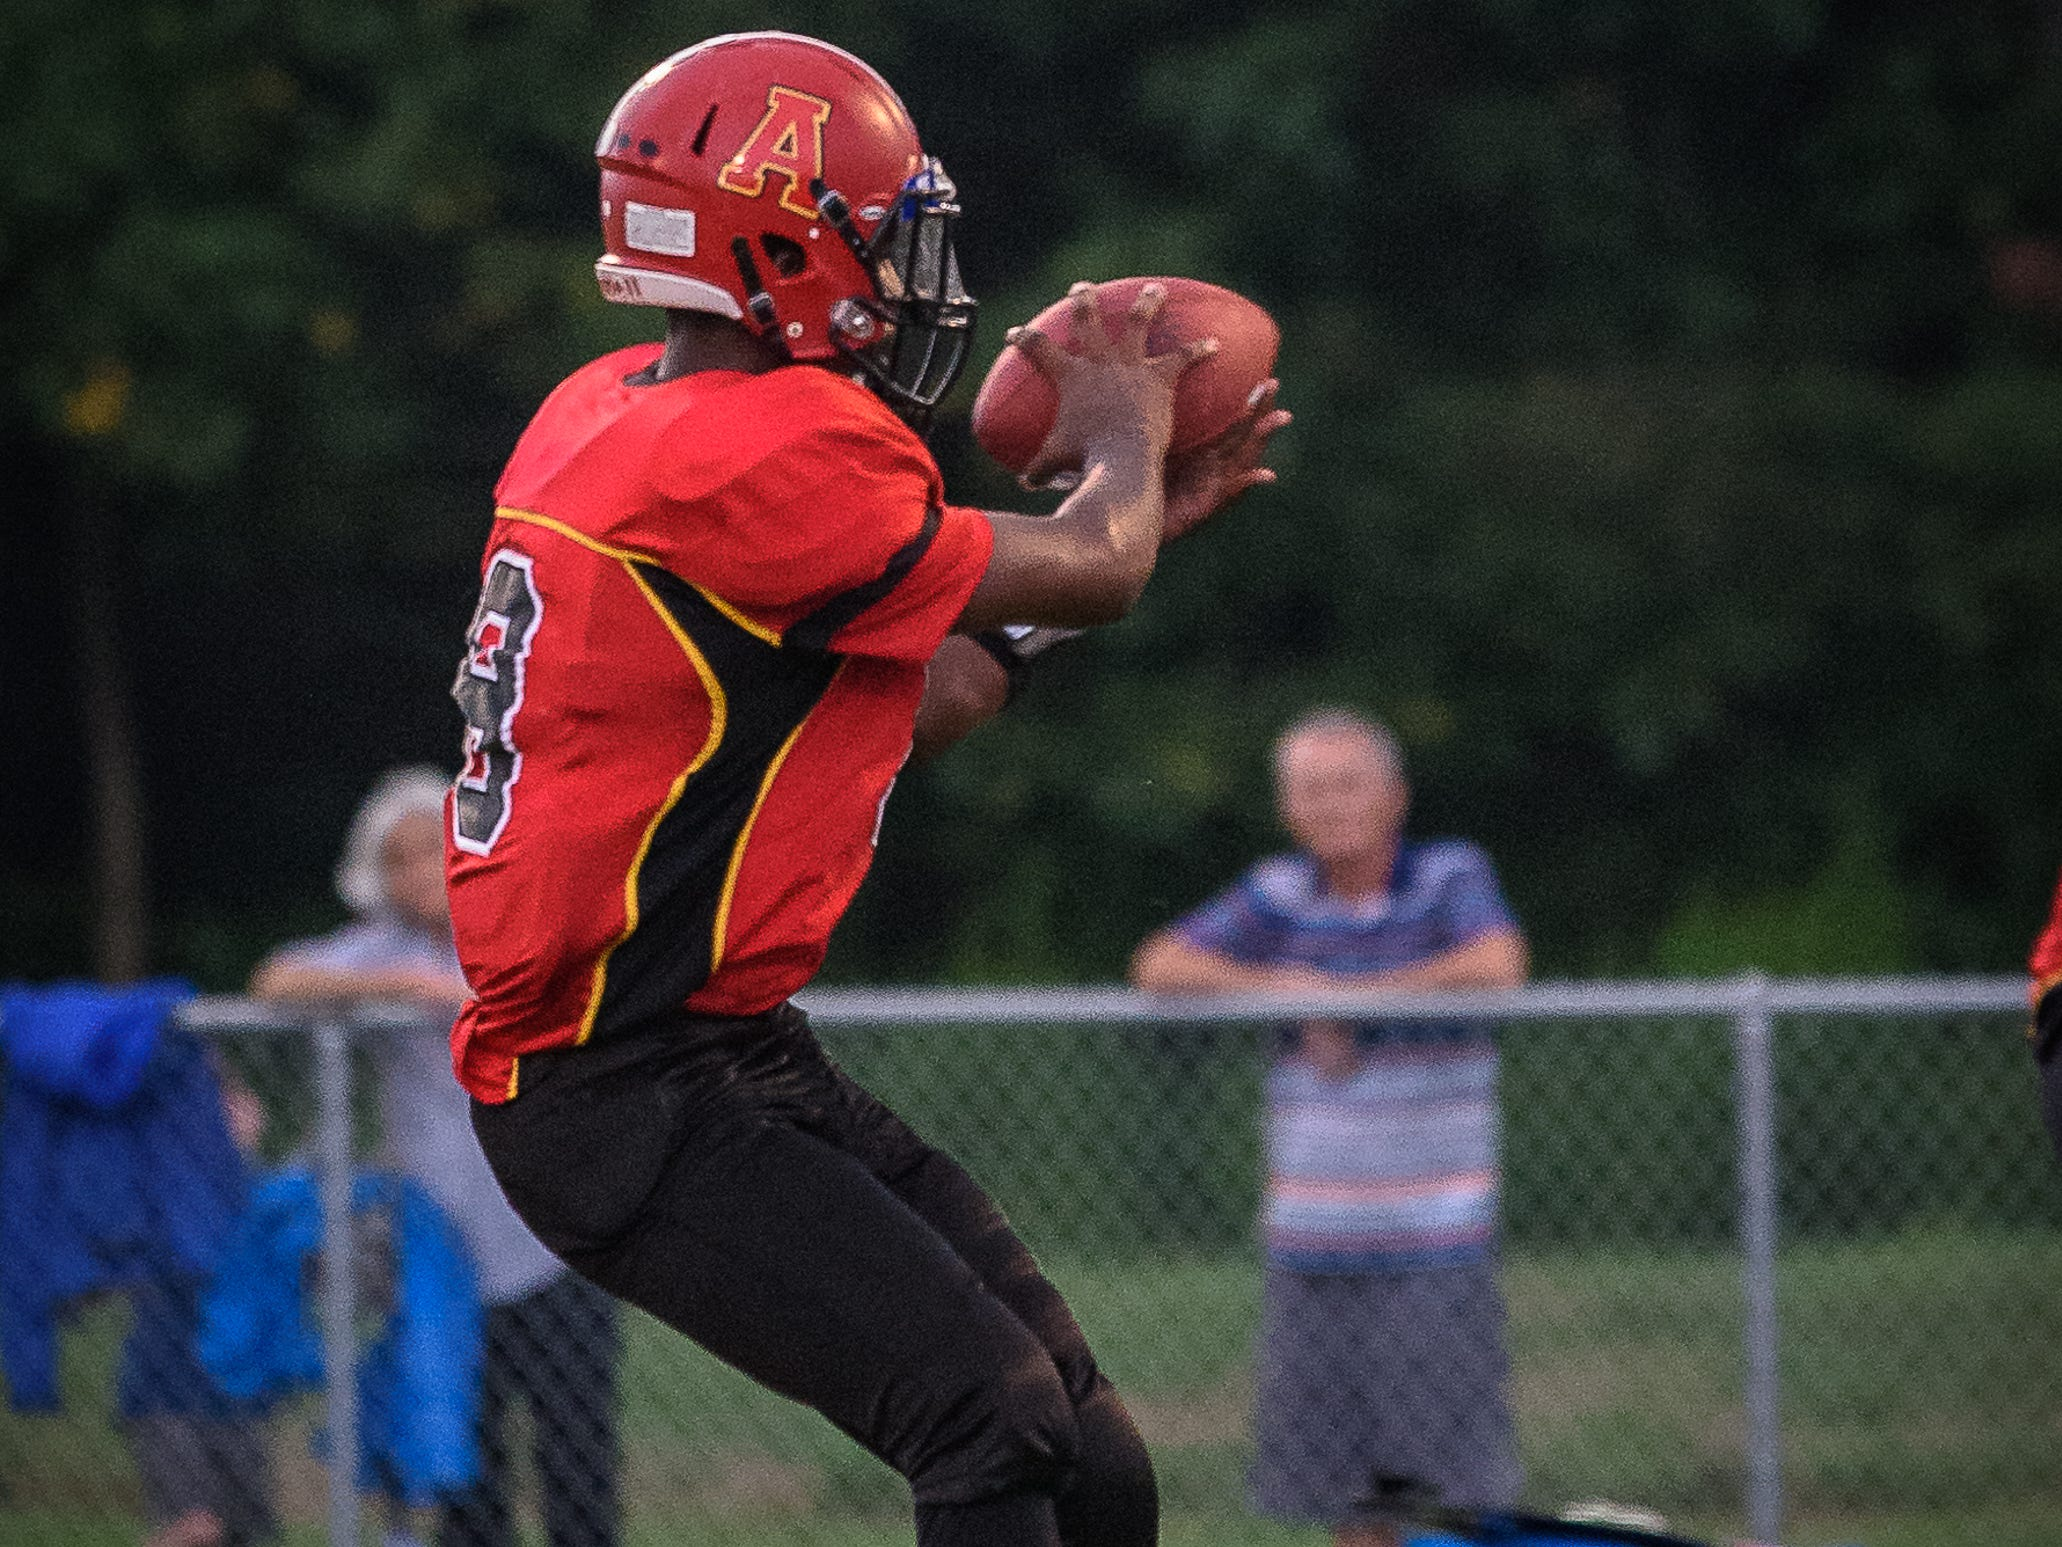 Arcadia's Lethon Williams takes a long snap during the loss against Decatur.